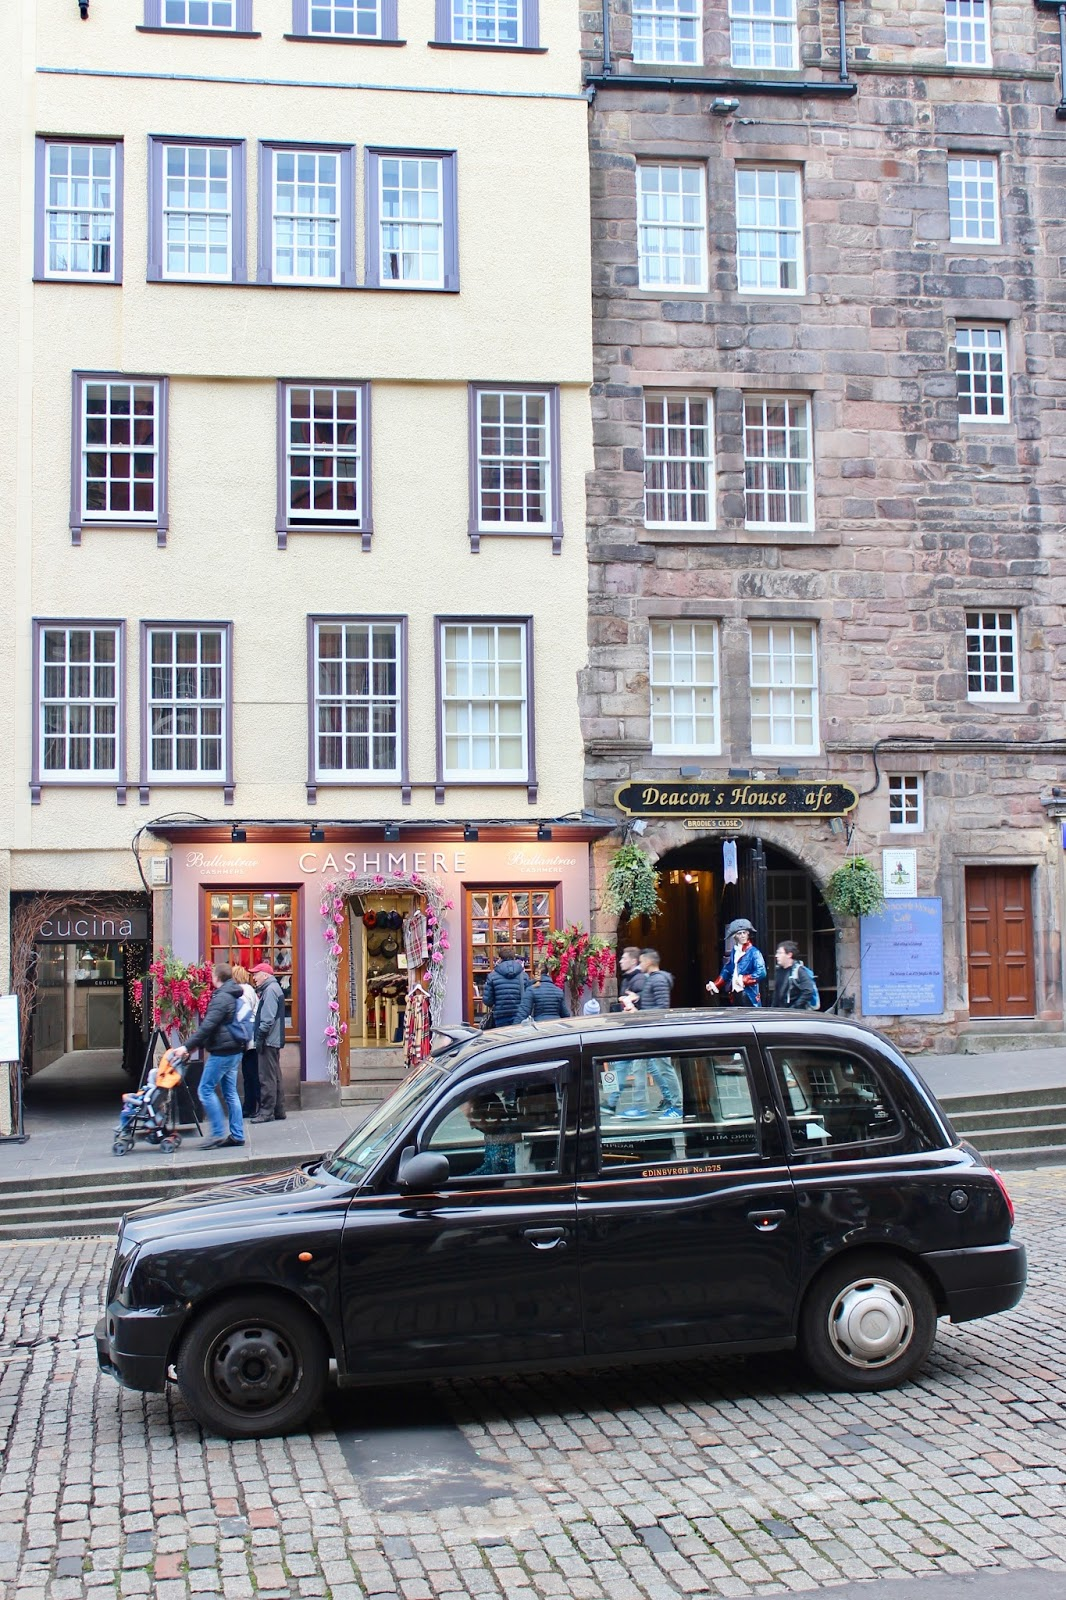 Cab in Edinburgh